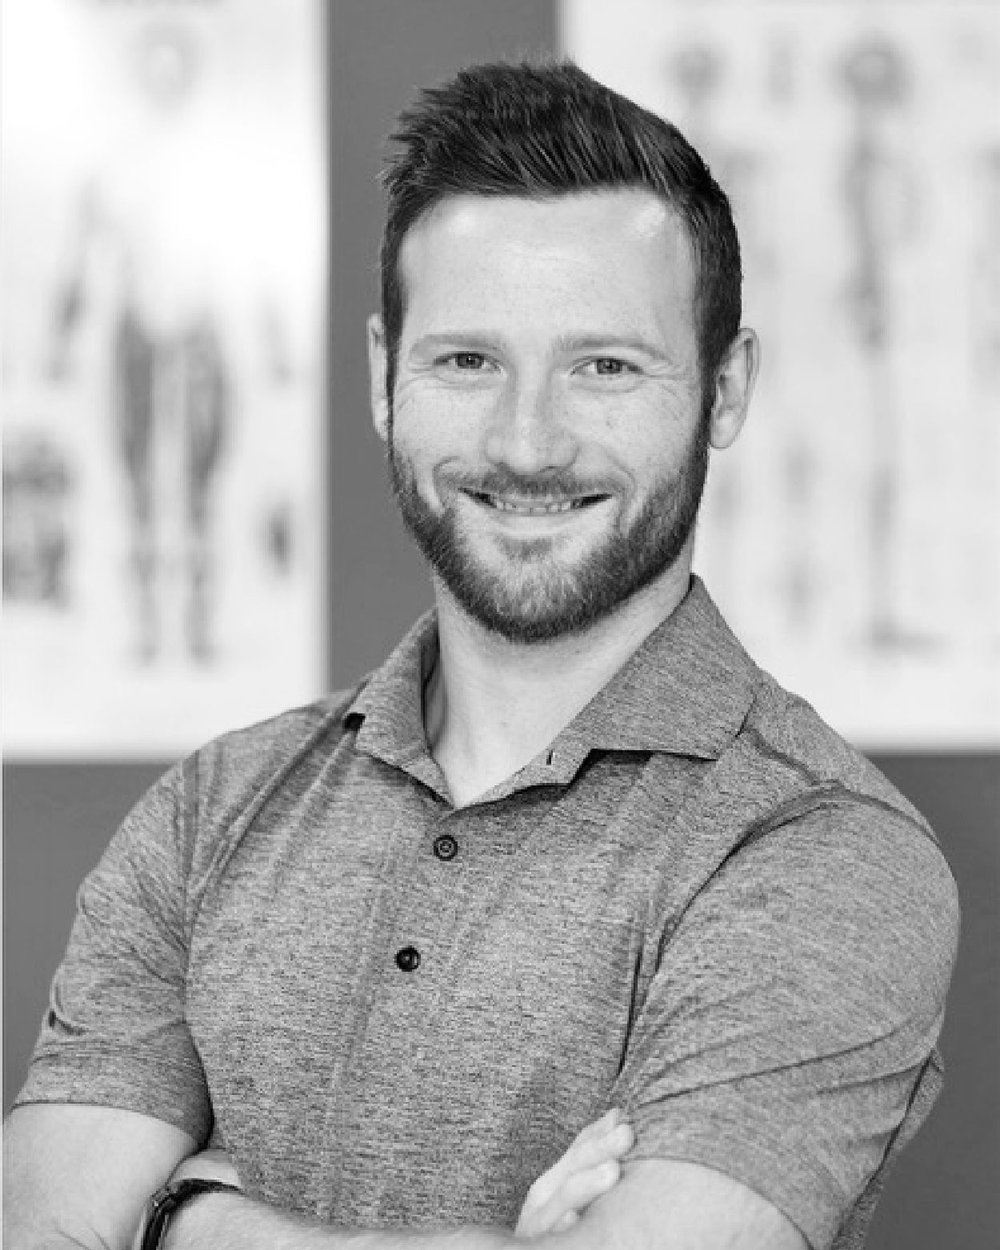 Dr. Taylor Tuff - Dr. Taylor Tuff received his Honours Bachelor of Science degree from McMaster University and his Doctor of Chiropractic degree from the Canadian Memorial Chiropractic College (CMCC). Following his chiropractic education, Dr. Tuff completed a post-doctoral sports sciences residency and subsequently earned his Fellowship with the Royal College of Chiropractic Sports Sciences (RCCSS(C)). He became interested in chiropractic and physical medicine from his experience as a previous national level gymnast and varsity rugby player. Dr. Tuff uses a functional evidence-based approach to care, combining chiropractic techniques, contemporary electro-acupuncture, myofascial release therapy, and rehabilitative exercise. He strongly believes that an integrated model of healthcare is essential to optimizing the health and well-being within communities.